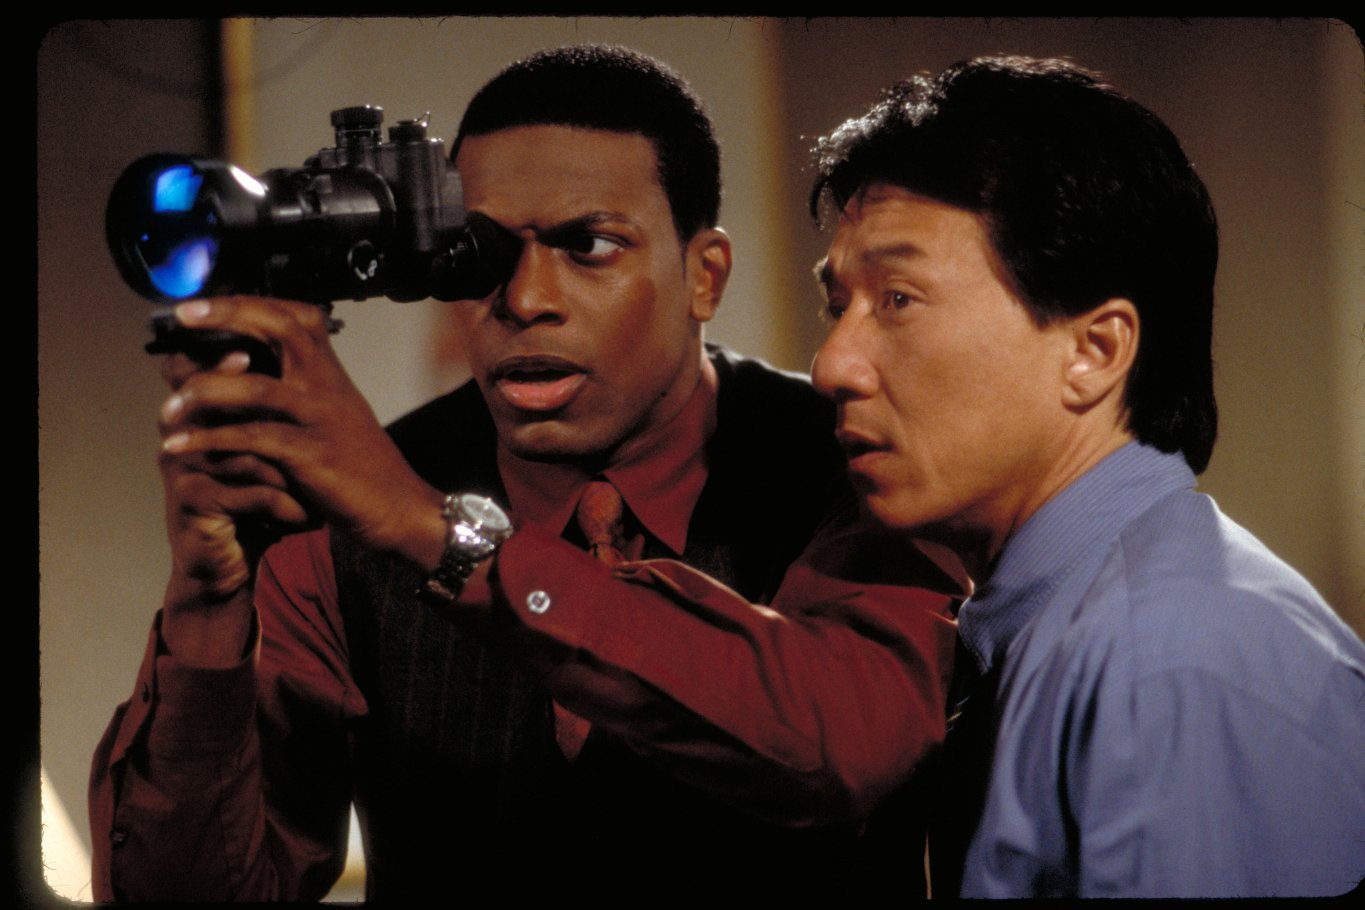 an analysis of rush hour an action movie starring jackie chan and chris tucker Get the full list of all jackie chan movies see who they starred with and what they are working on now.